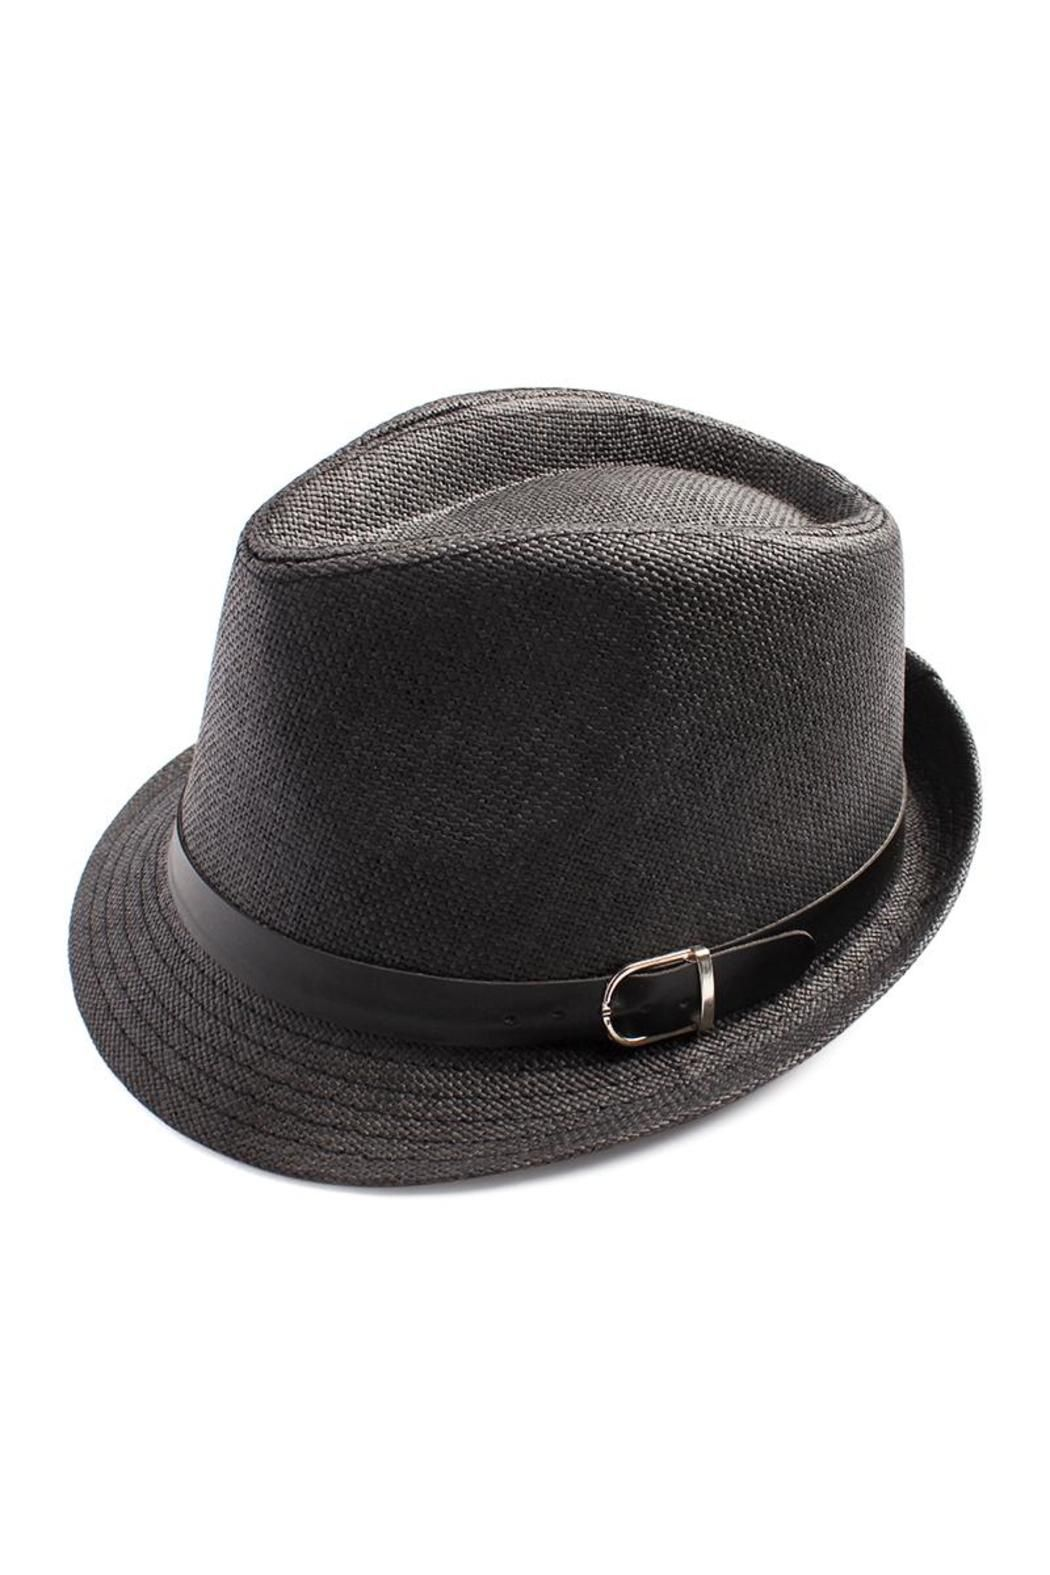 "A smooth faux-leather belt encircles a classic fedora hat featuring a unique woven finish.     Measurements: 23"" Circumference, 5"" Crown, 1.2"" Brim   Short Brim Fedora by Riah Fashion. Accessories - Hats California"